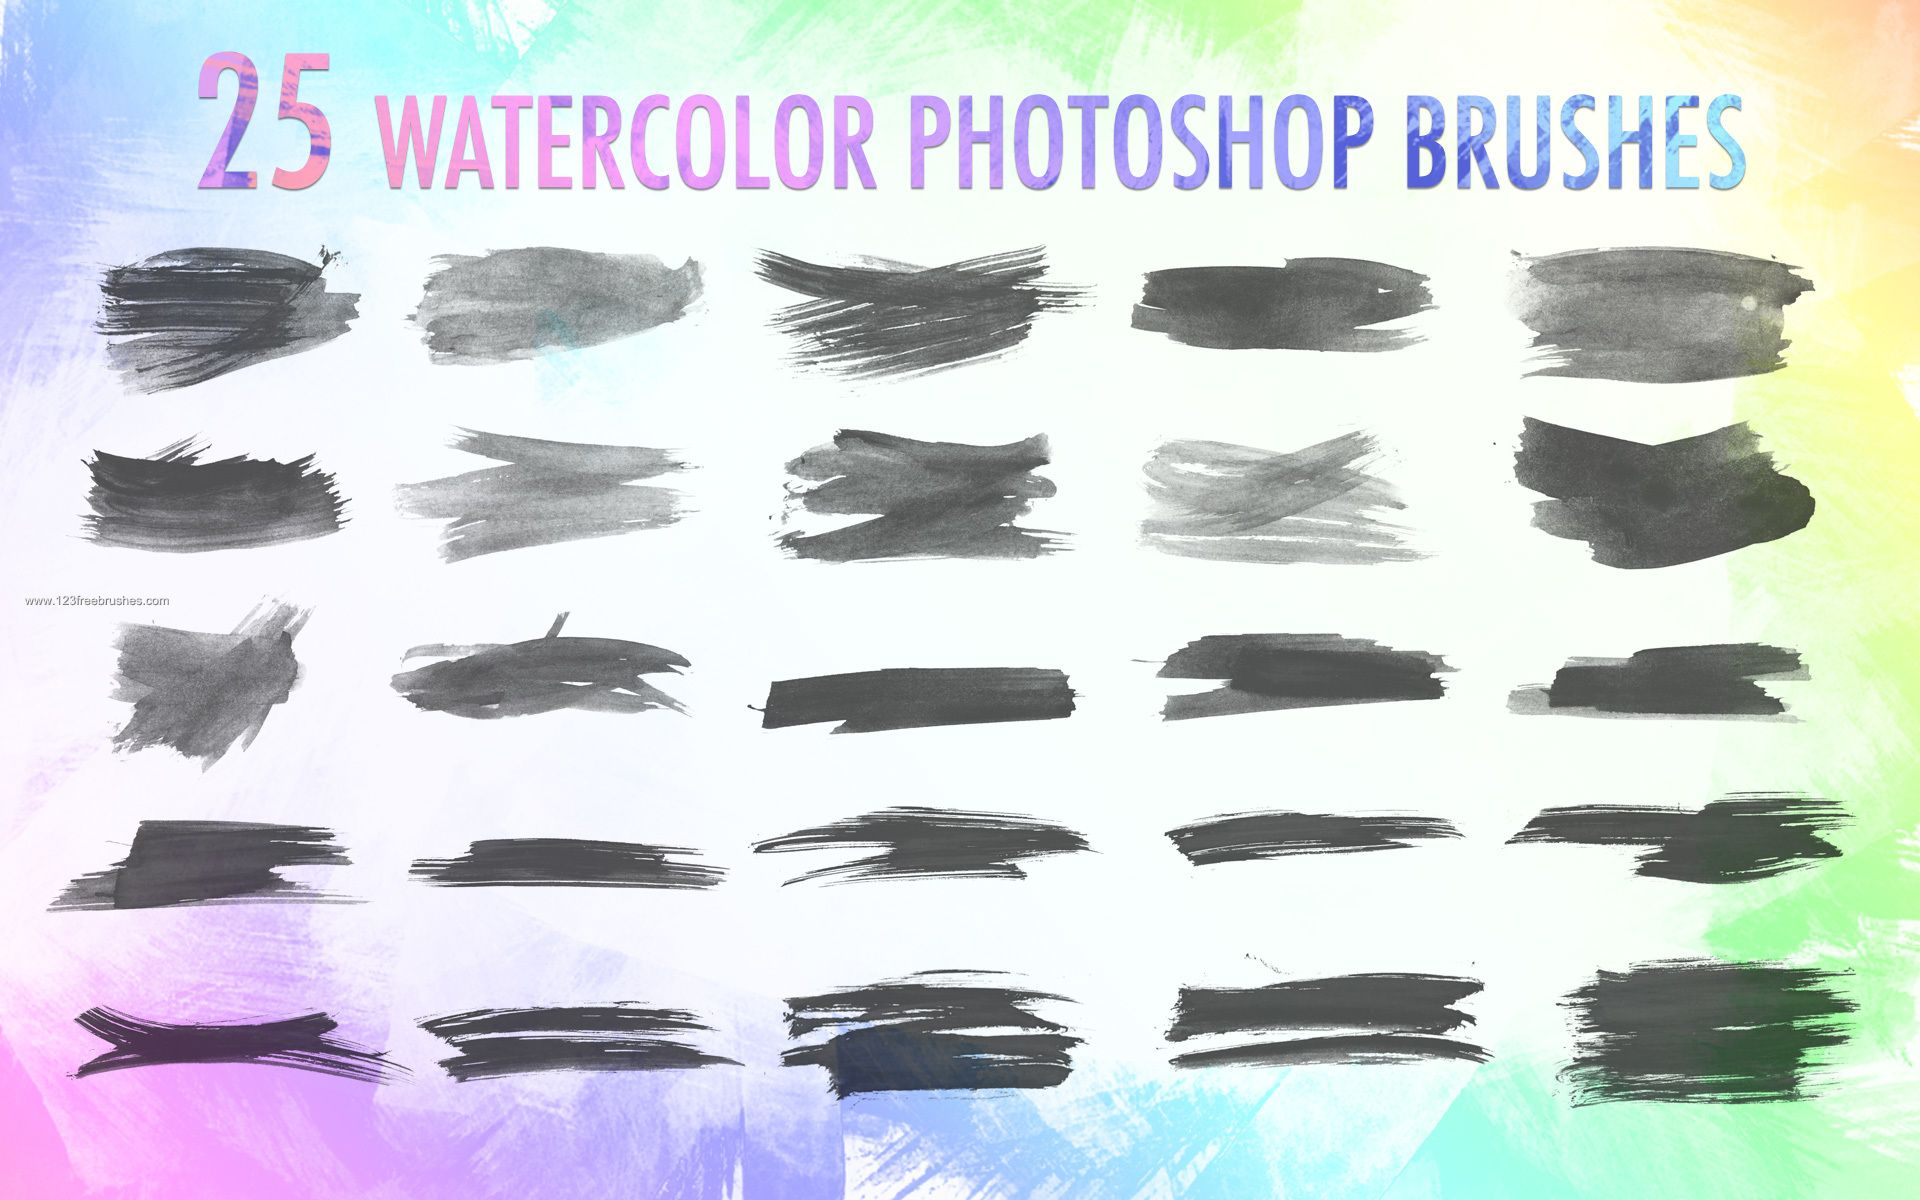 Watercolor Photoshop Brushes Photoshop Watercolor